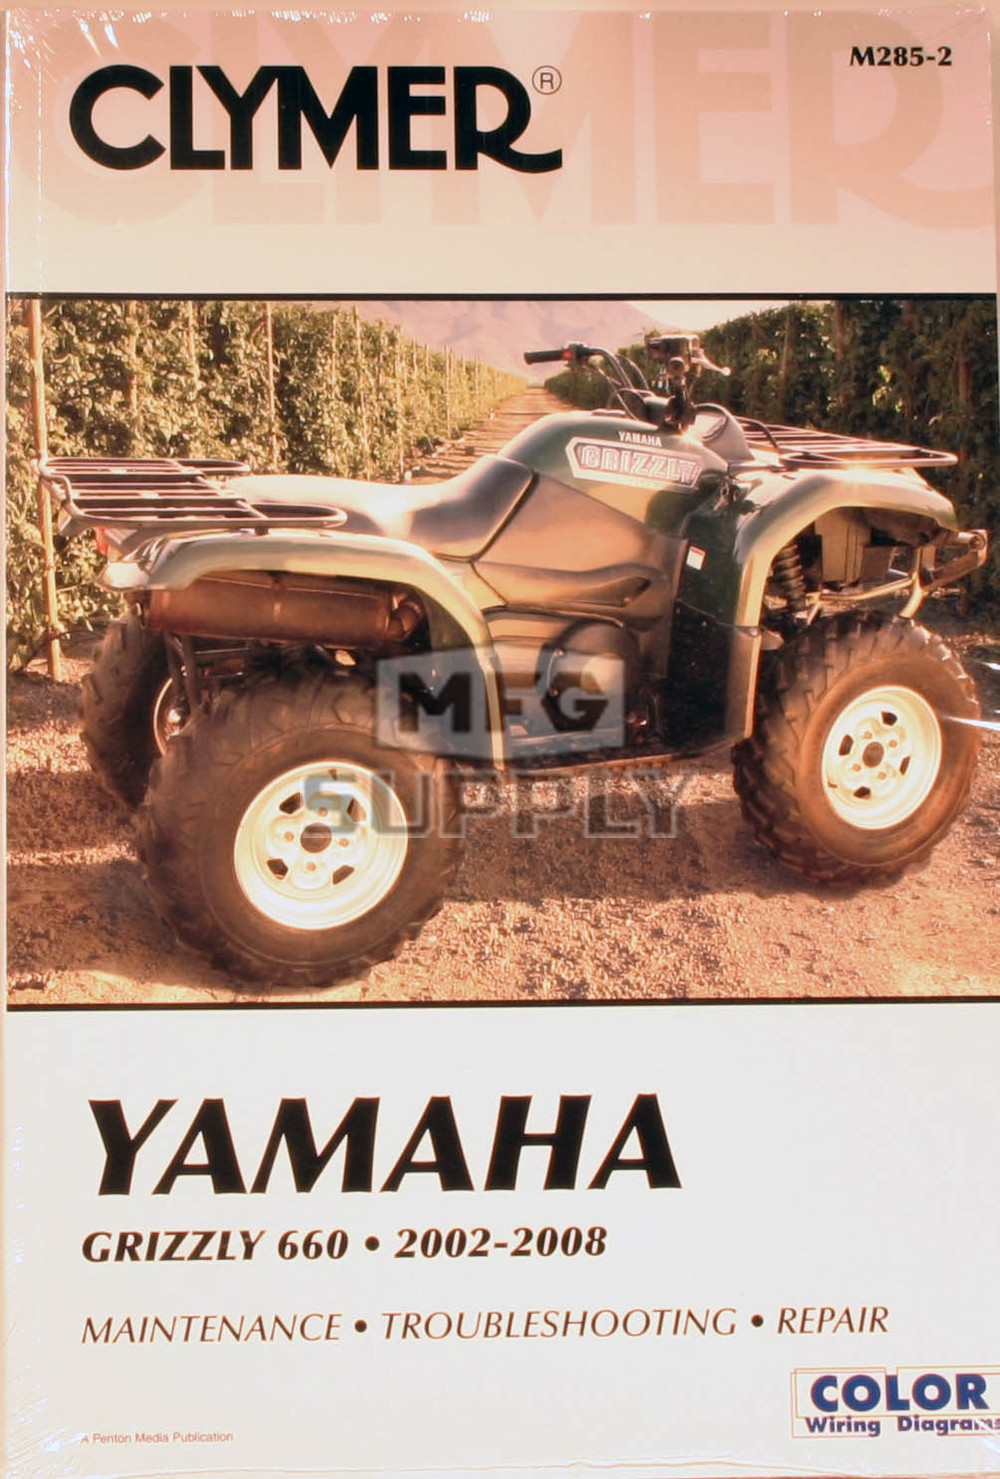 hight resolution of cm285 02 08 yamaha grizzly 660 repair maintenance manual